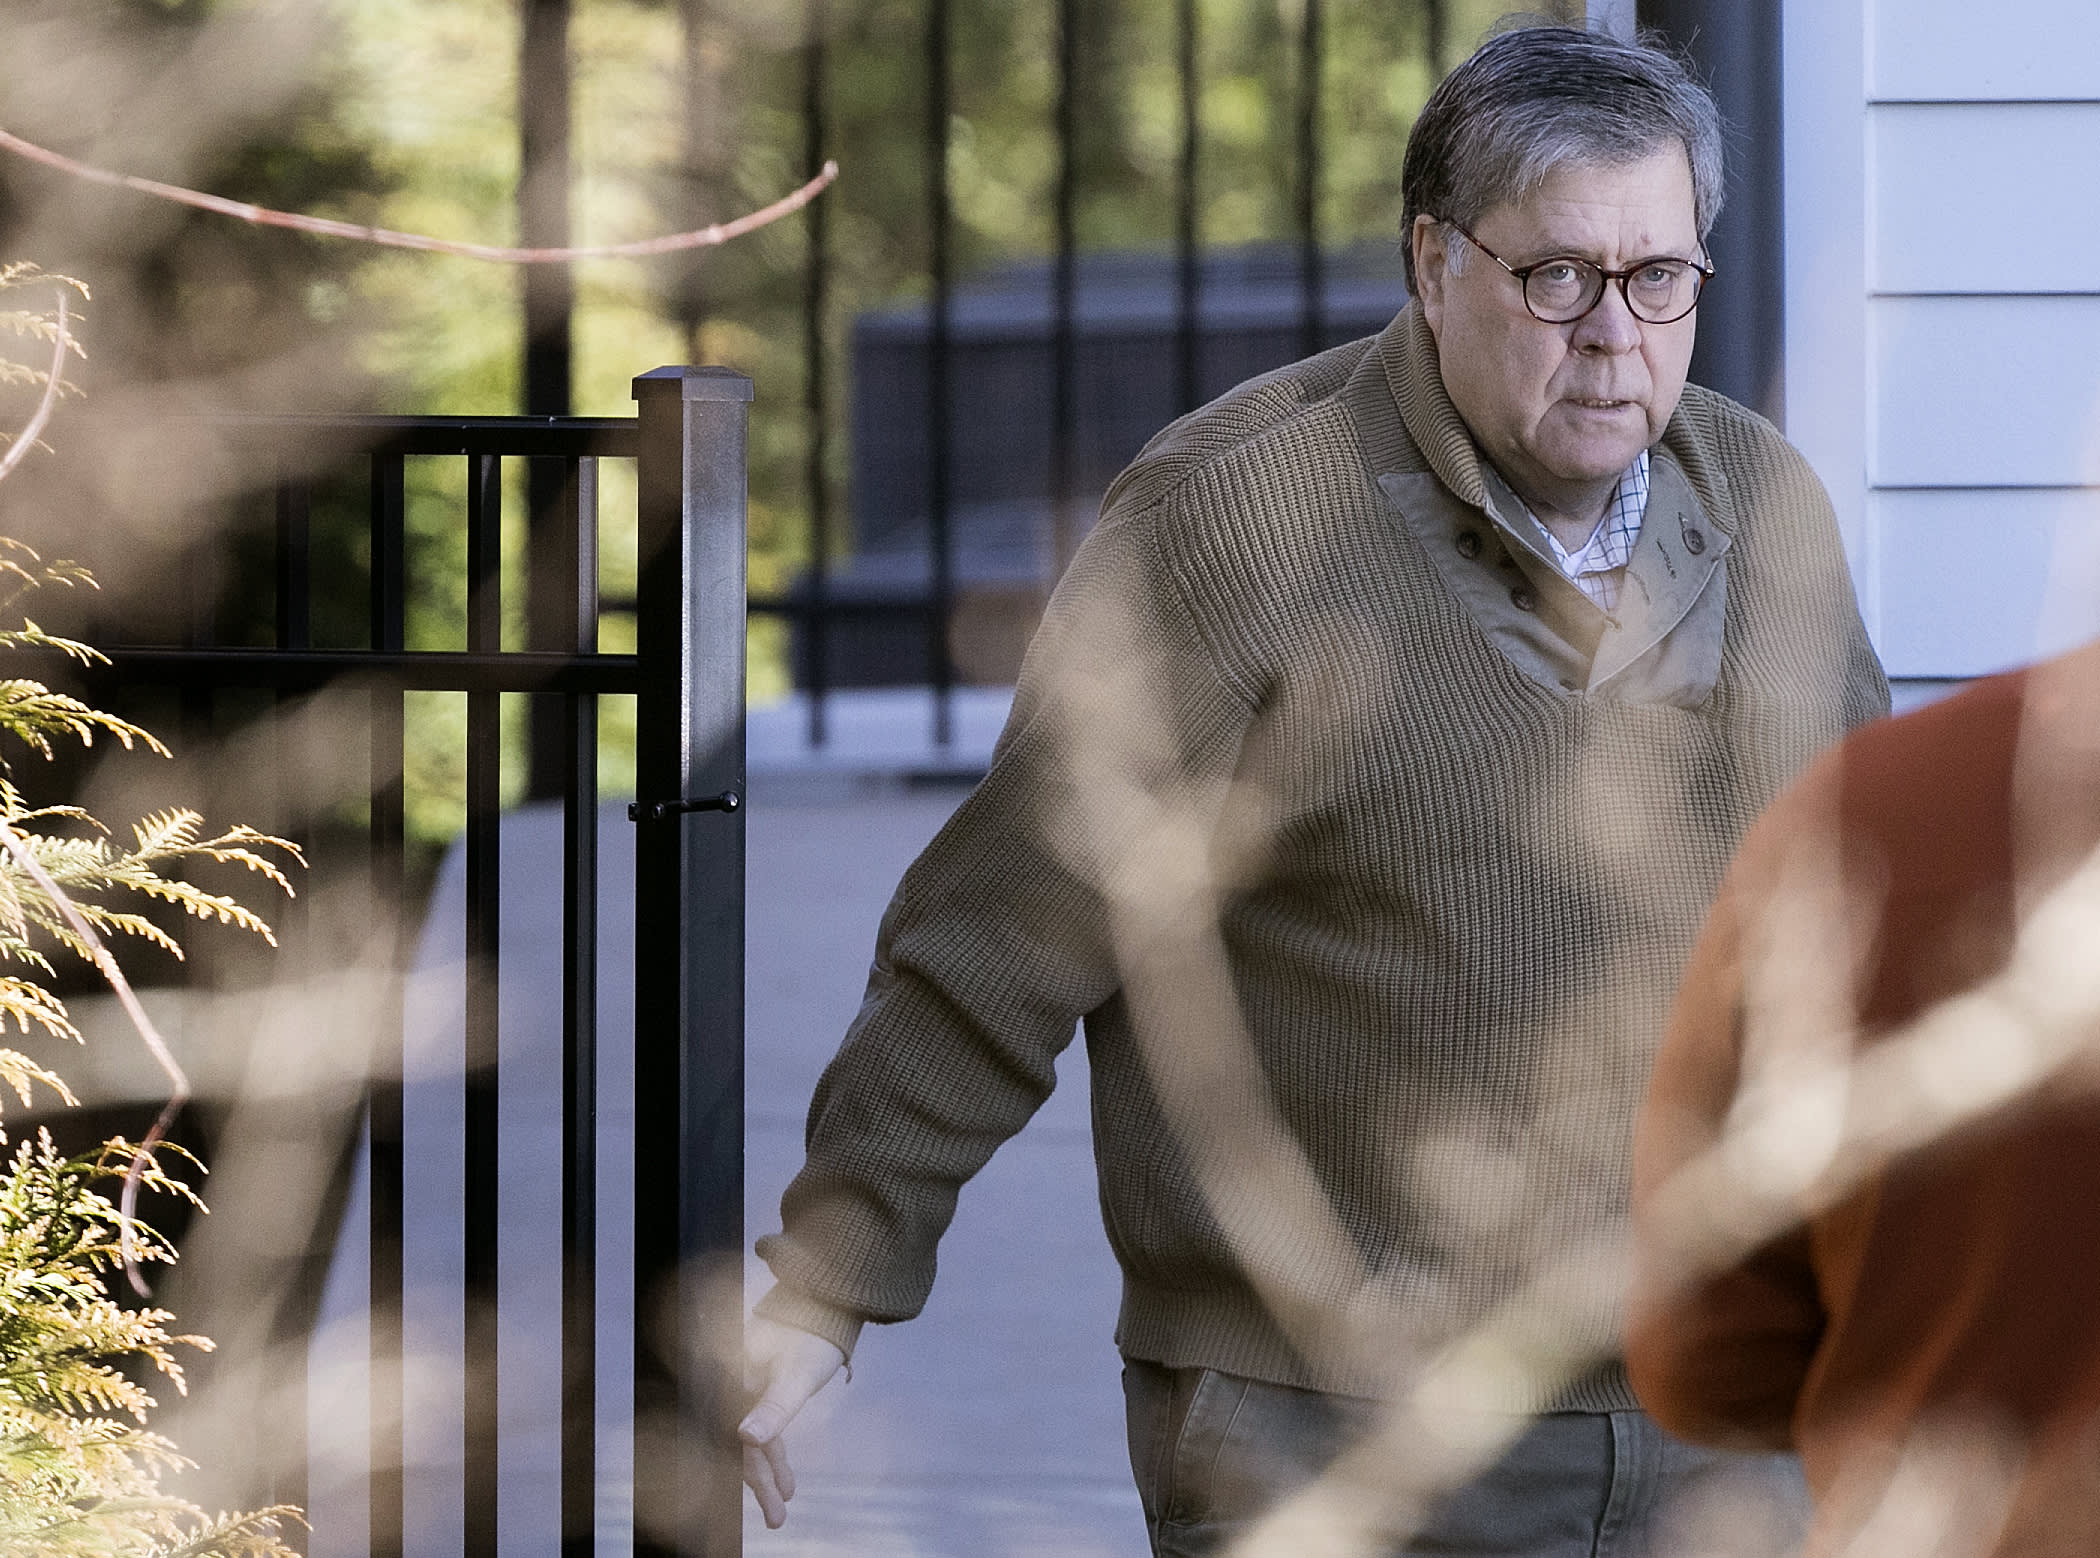 Attorney General Barr reportedly won't share Mueller report findings with Congress on Saturday